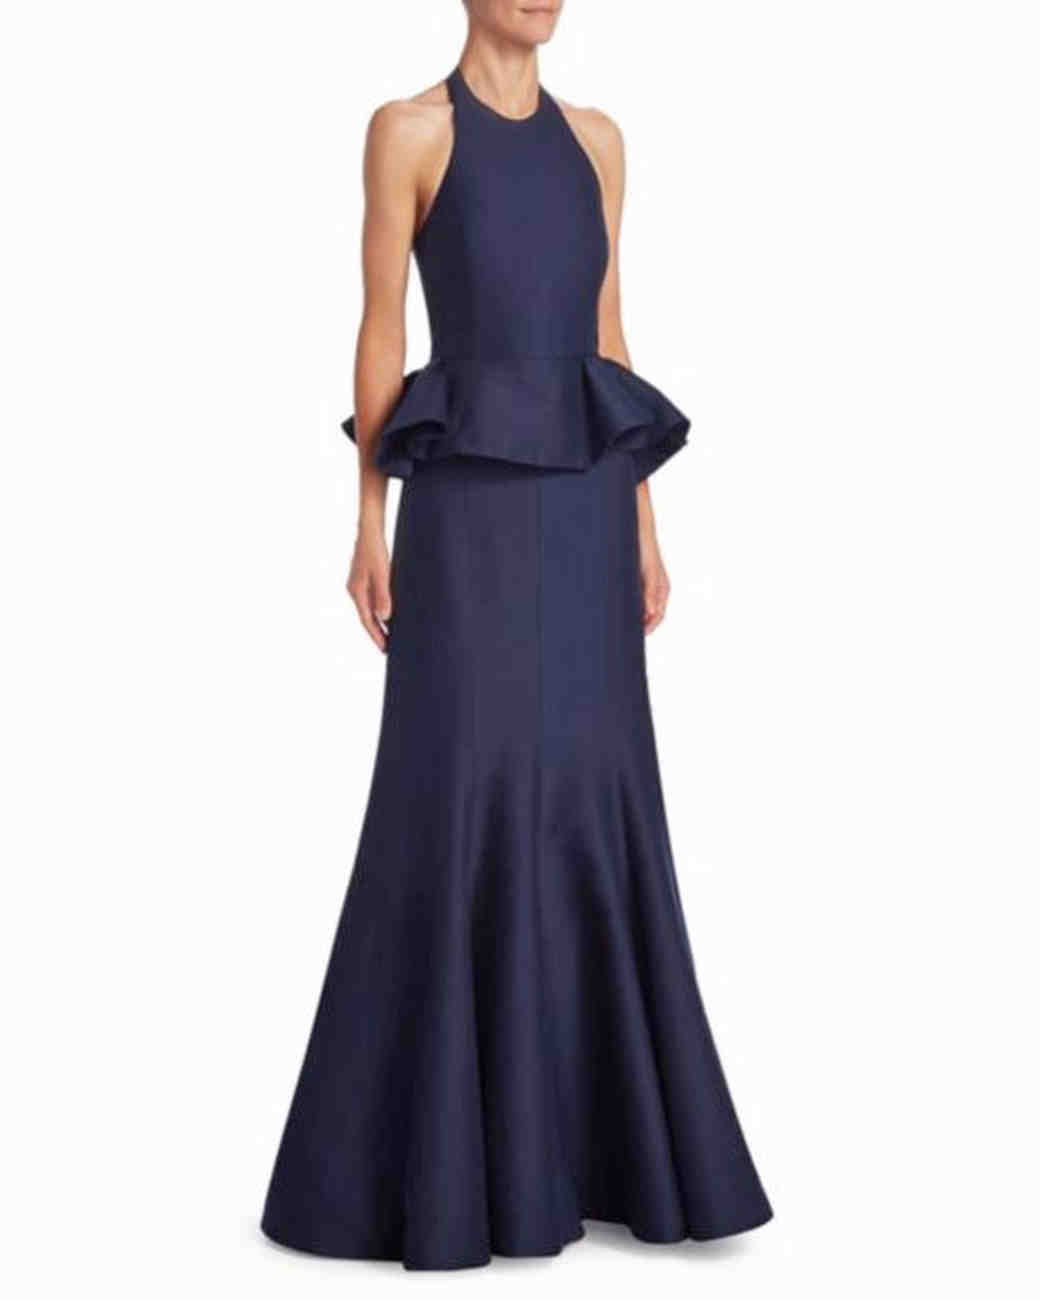 hair styles for mother of the bride 35 navy dresses for classic mothers of the and groom 4050 | navy mob dresses halston heritage 0518 vert